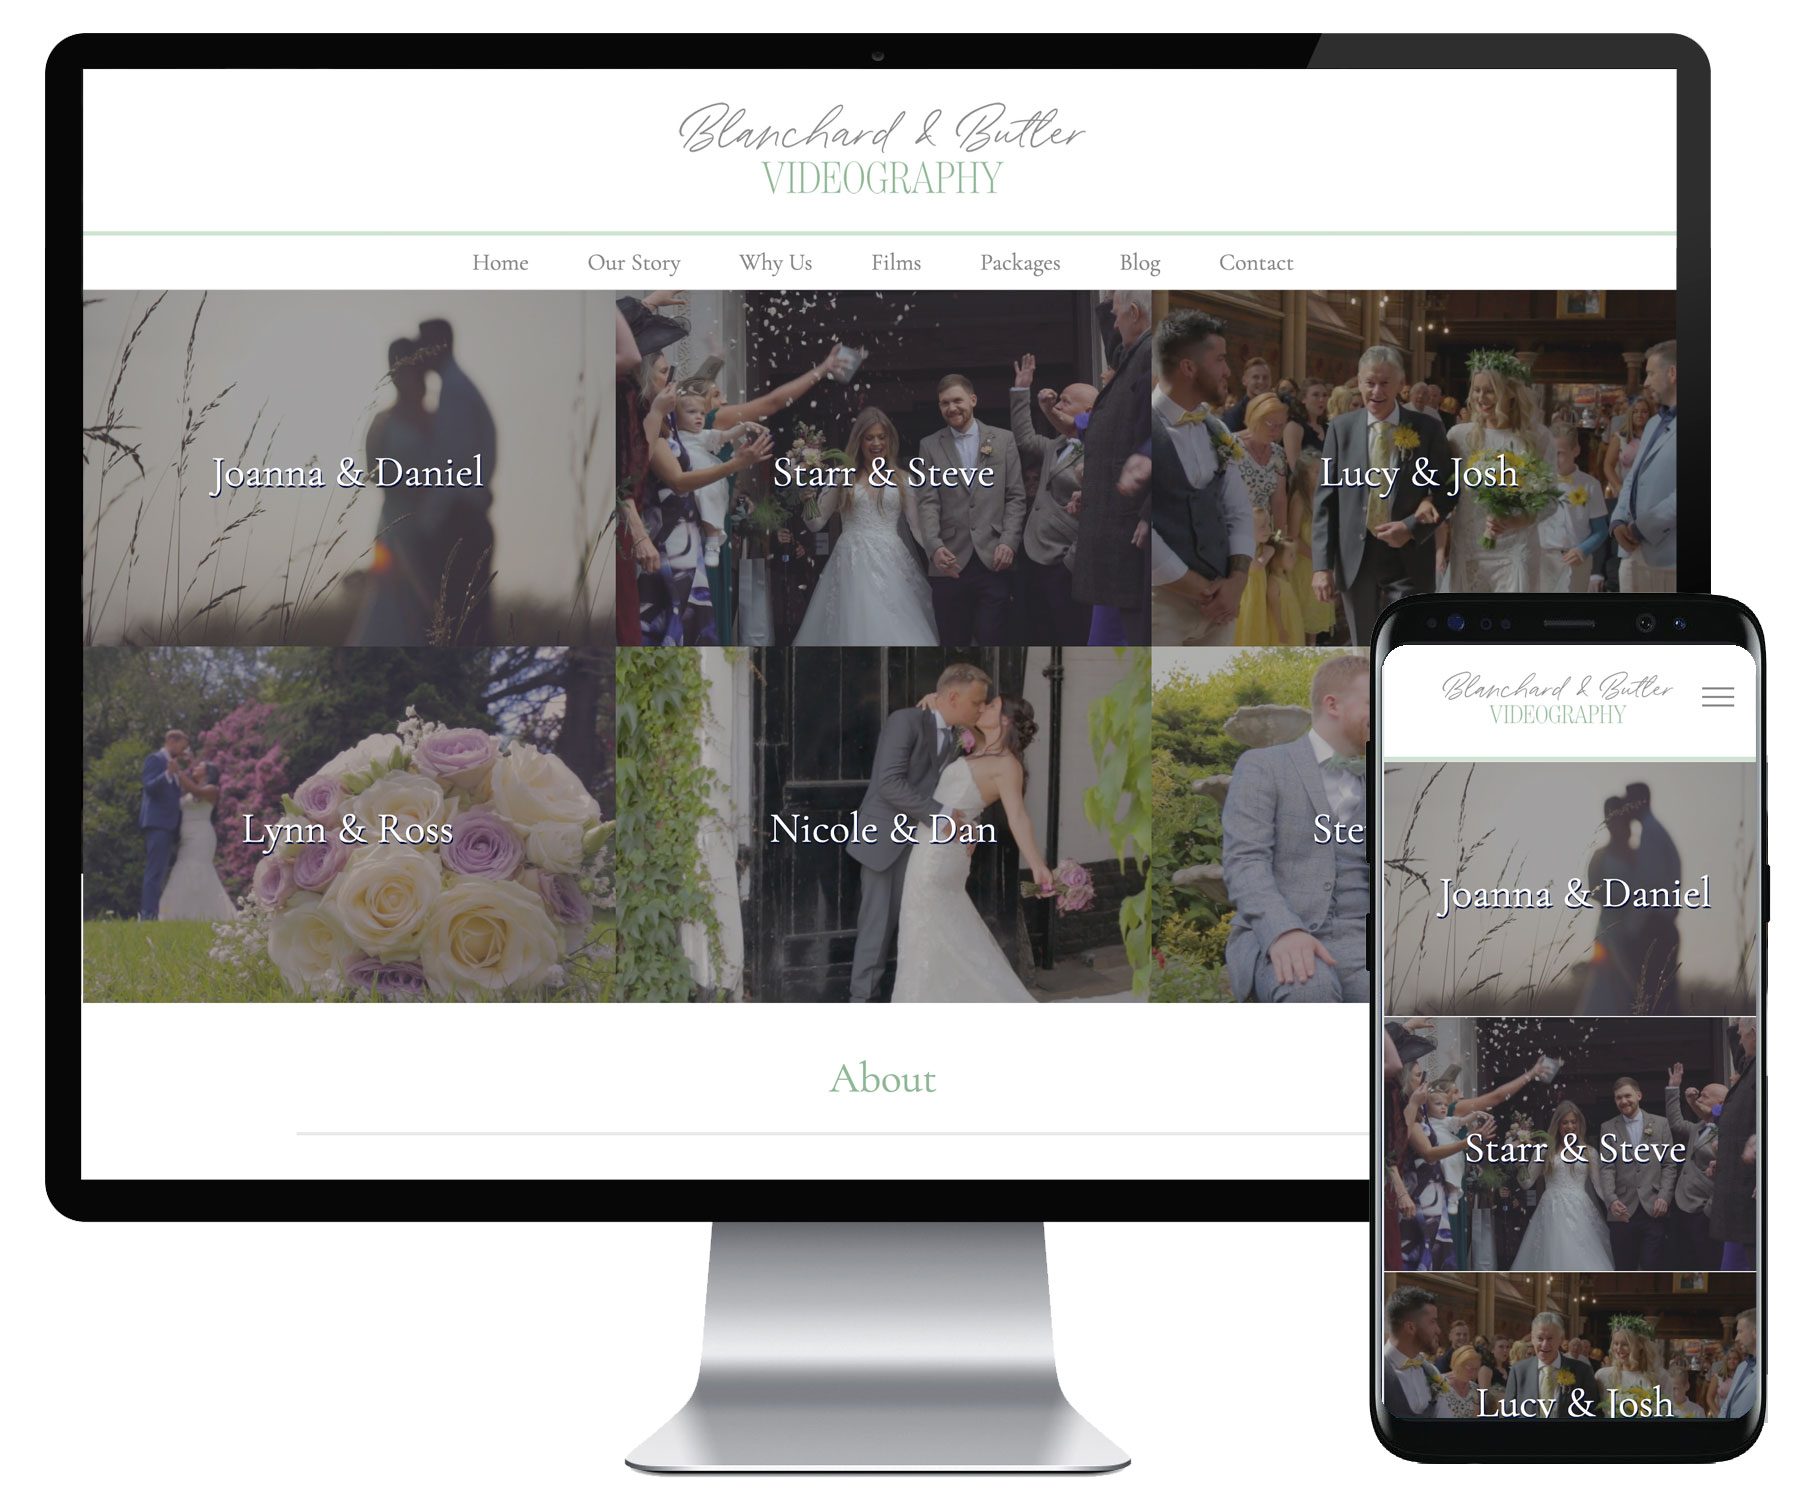 Blanchard and Butler Videography website